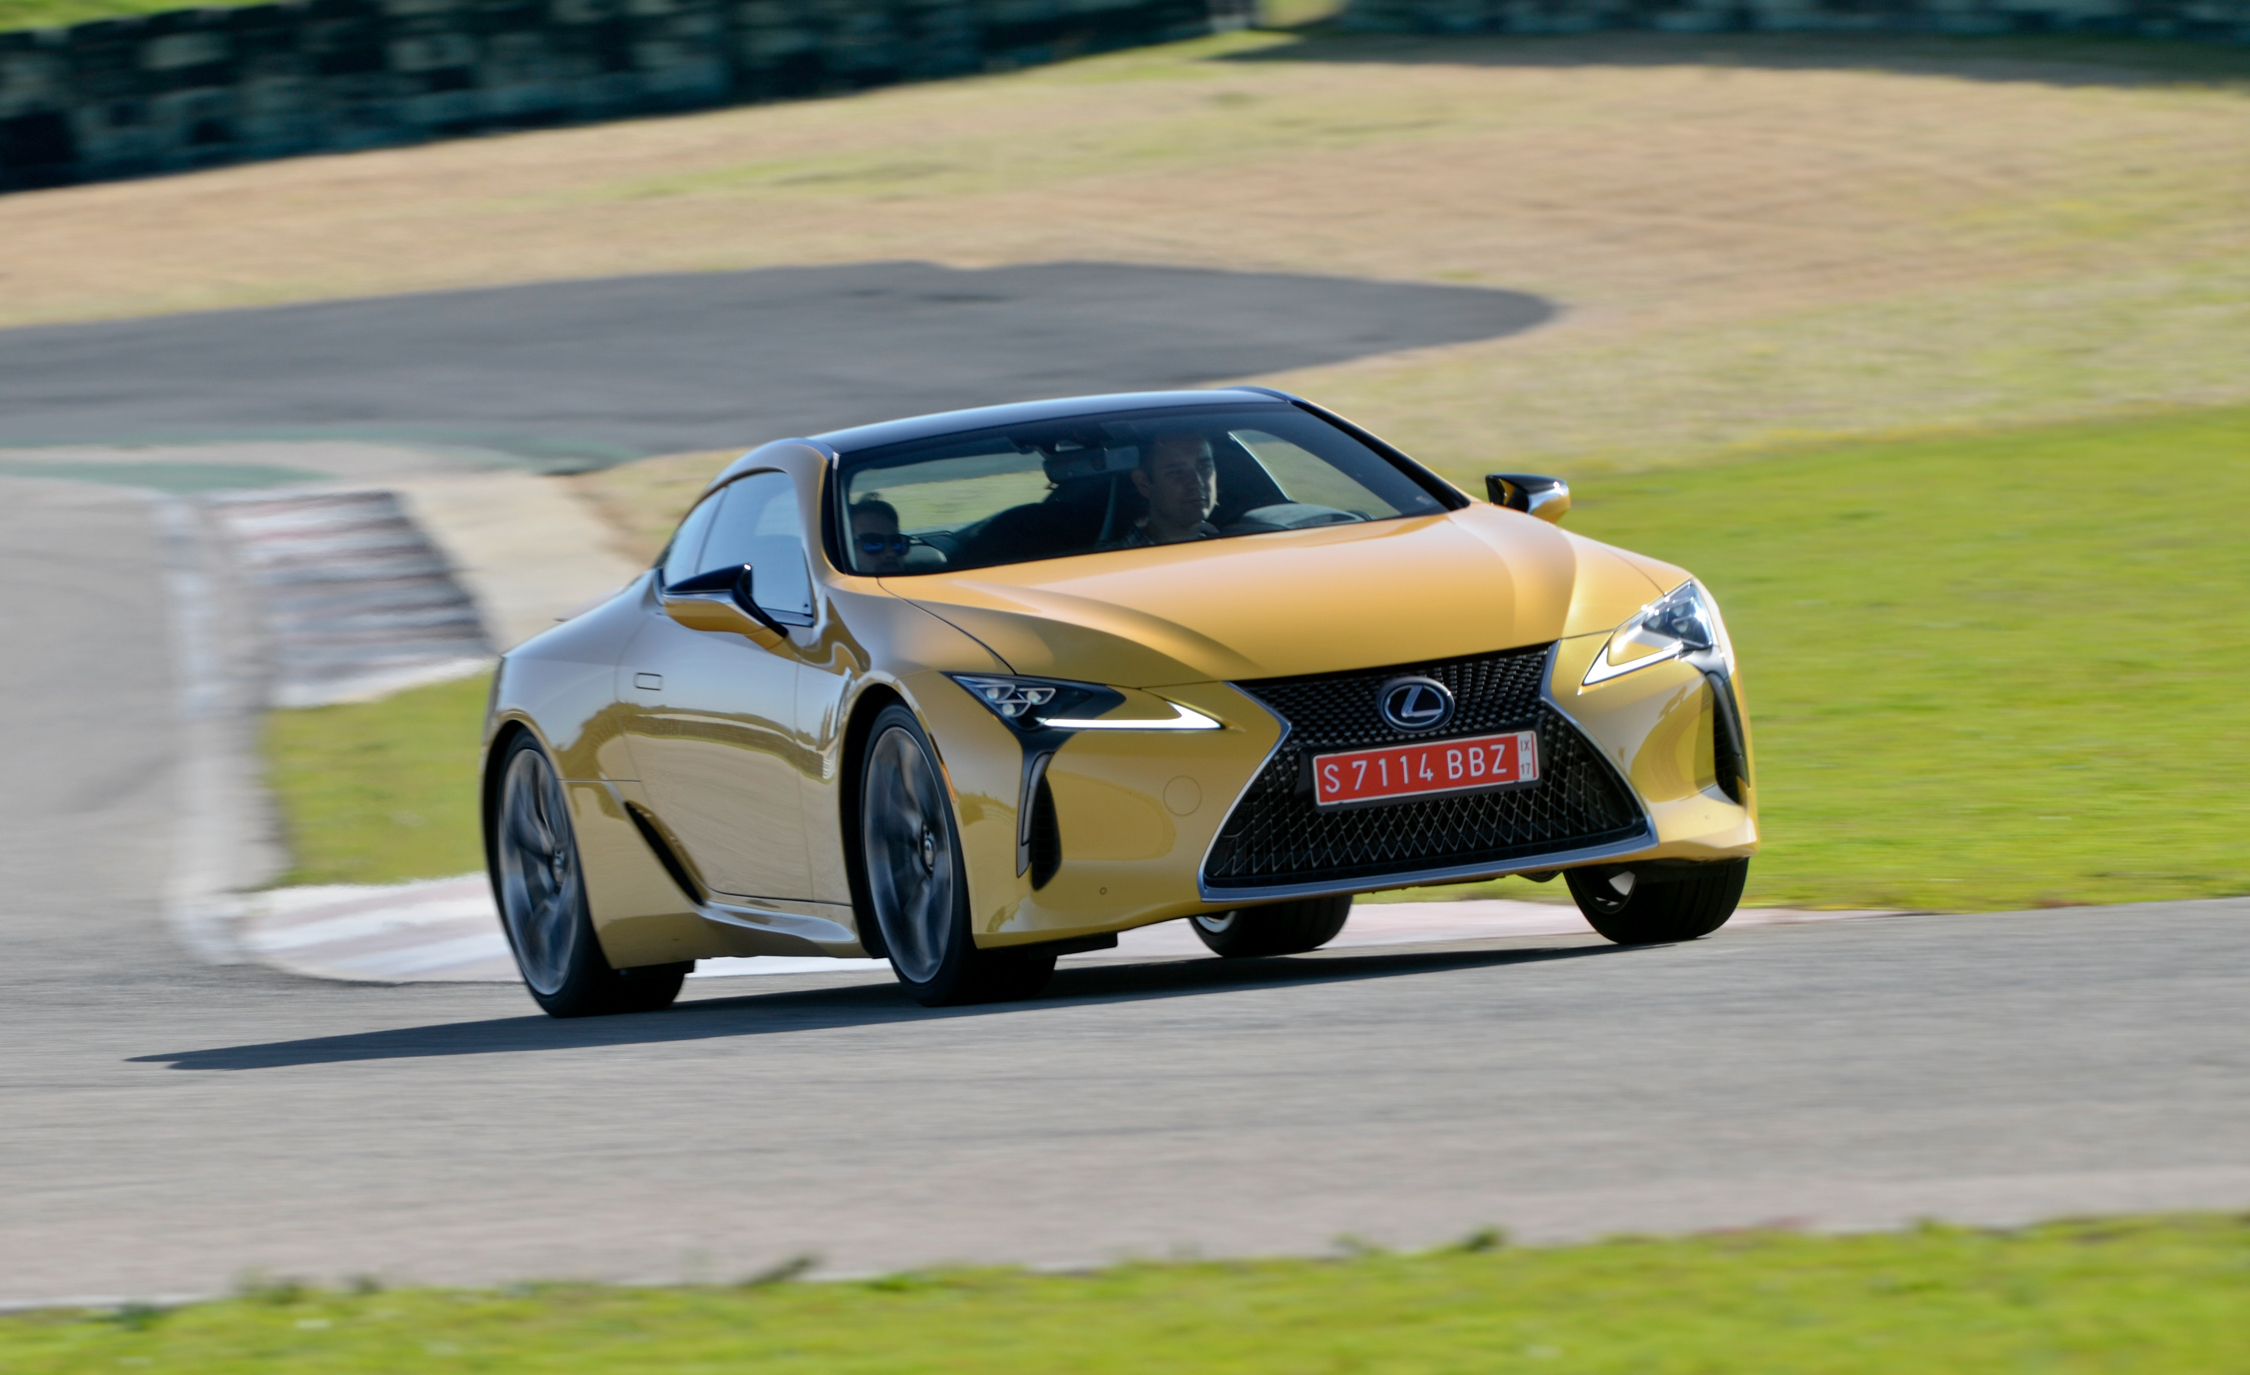 2018 Lexus Lc 500 Yellow Test Drive Front View (Photo 31 of 84)